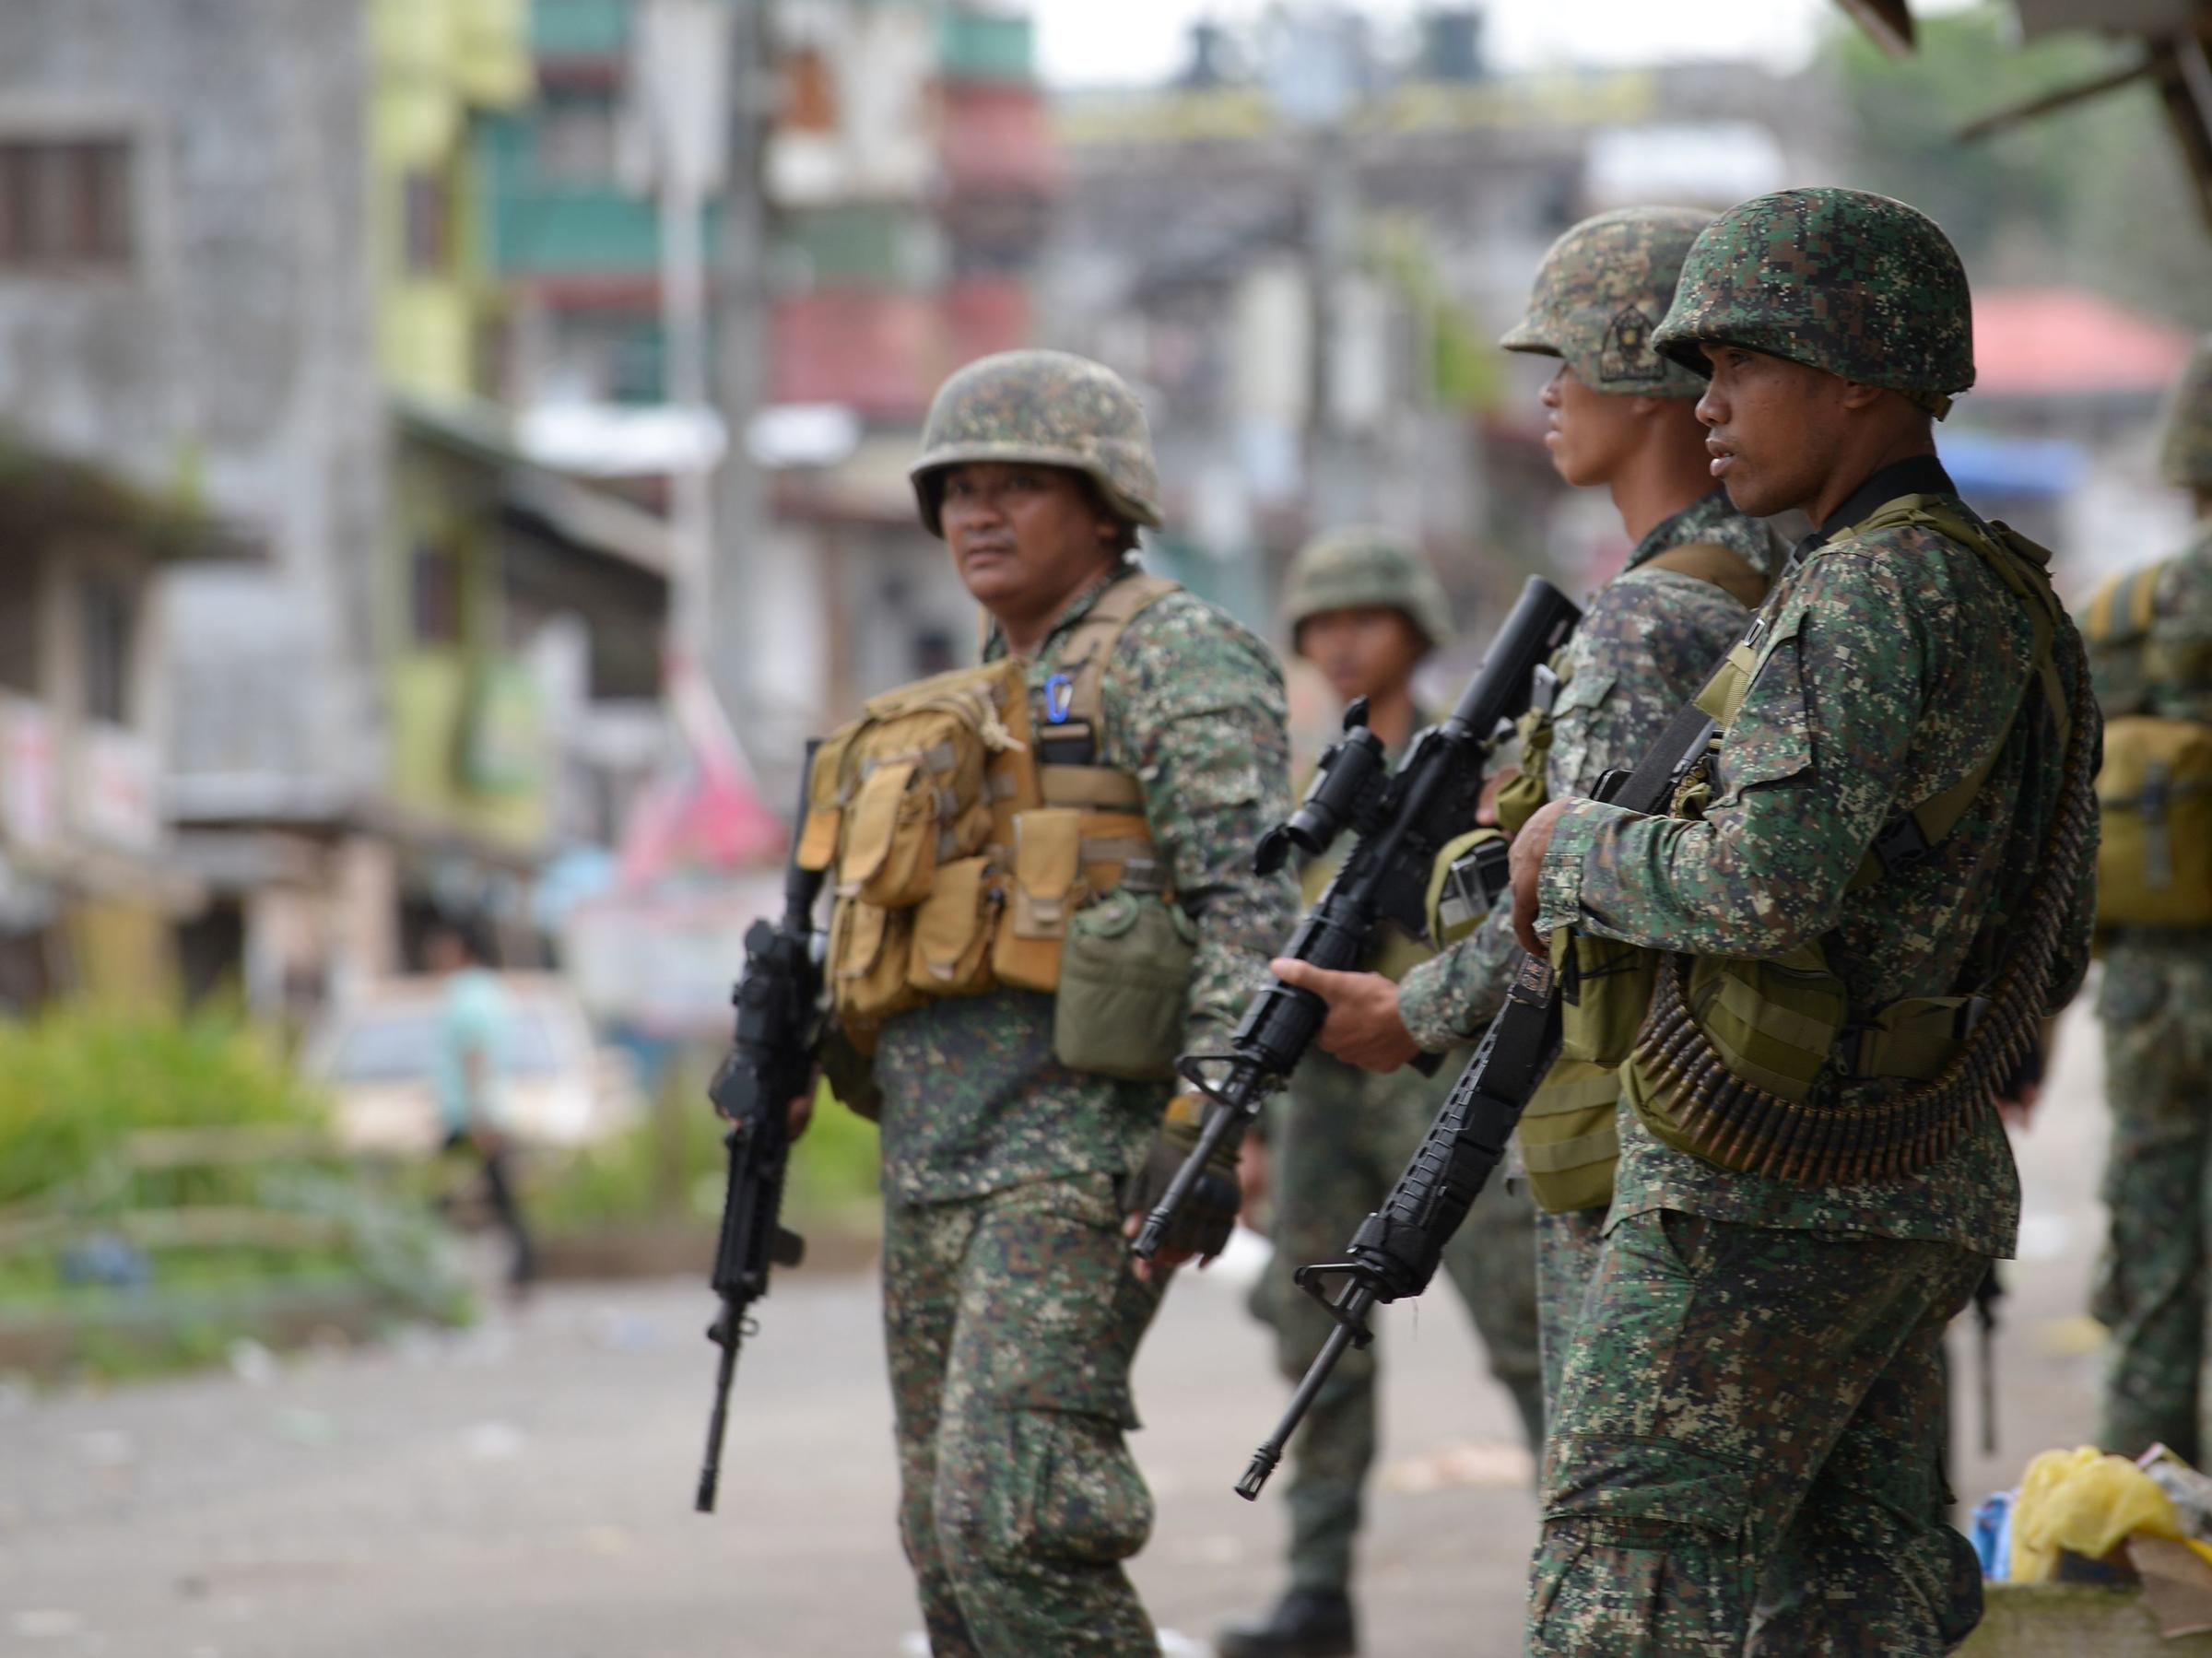 Philippine forces make gains in southern city under siege